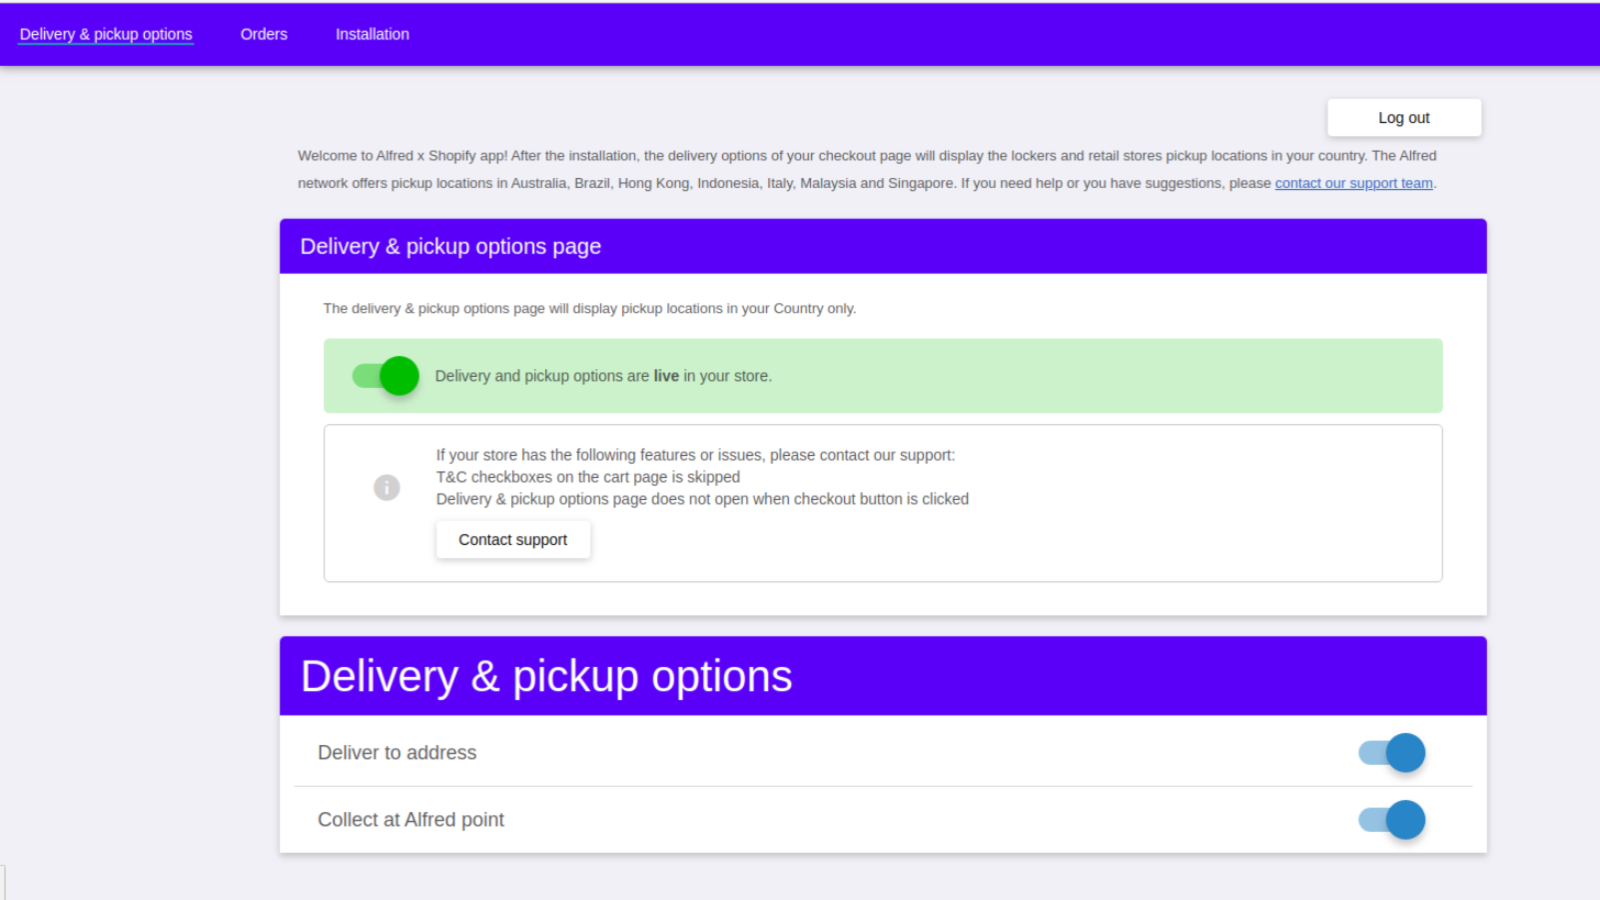 Delivery and pickup options